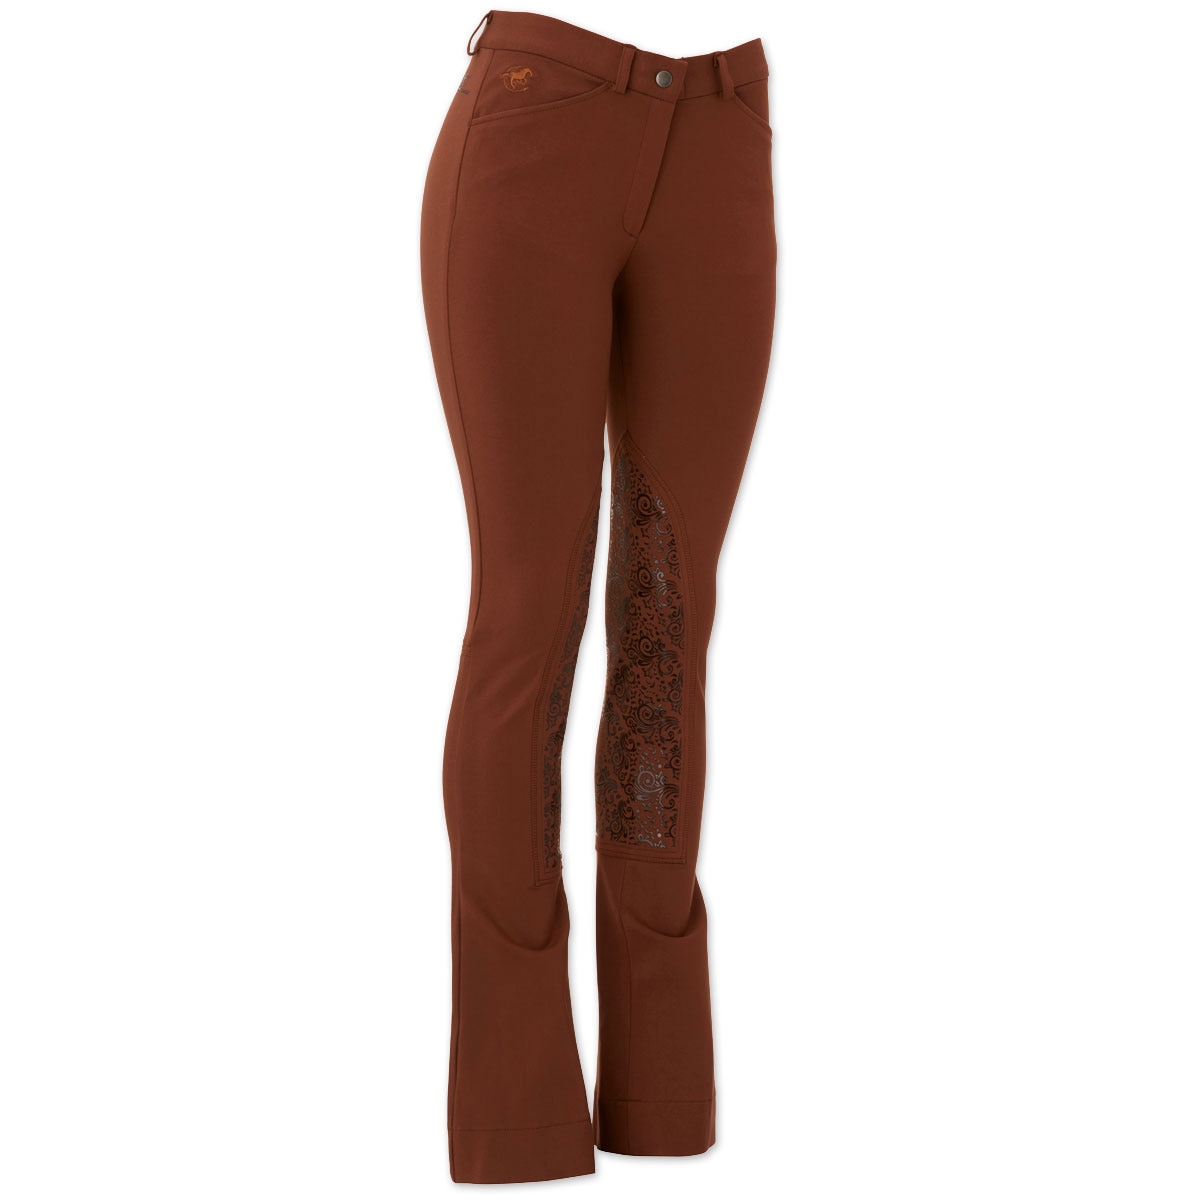 Piper Knit Breeches by SmartPak - Mid Rise Boot Cut - Sale!